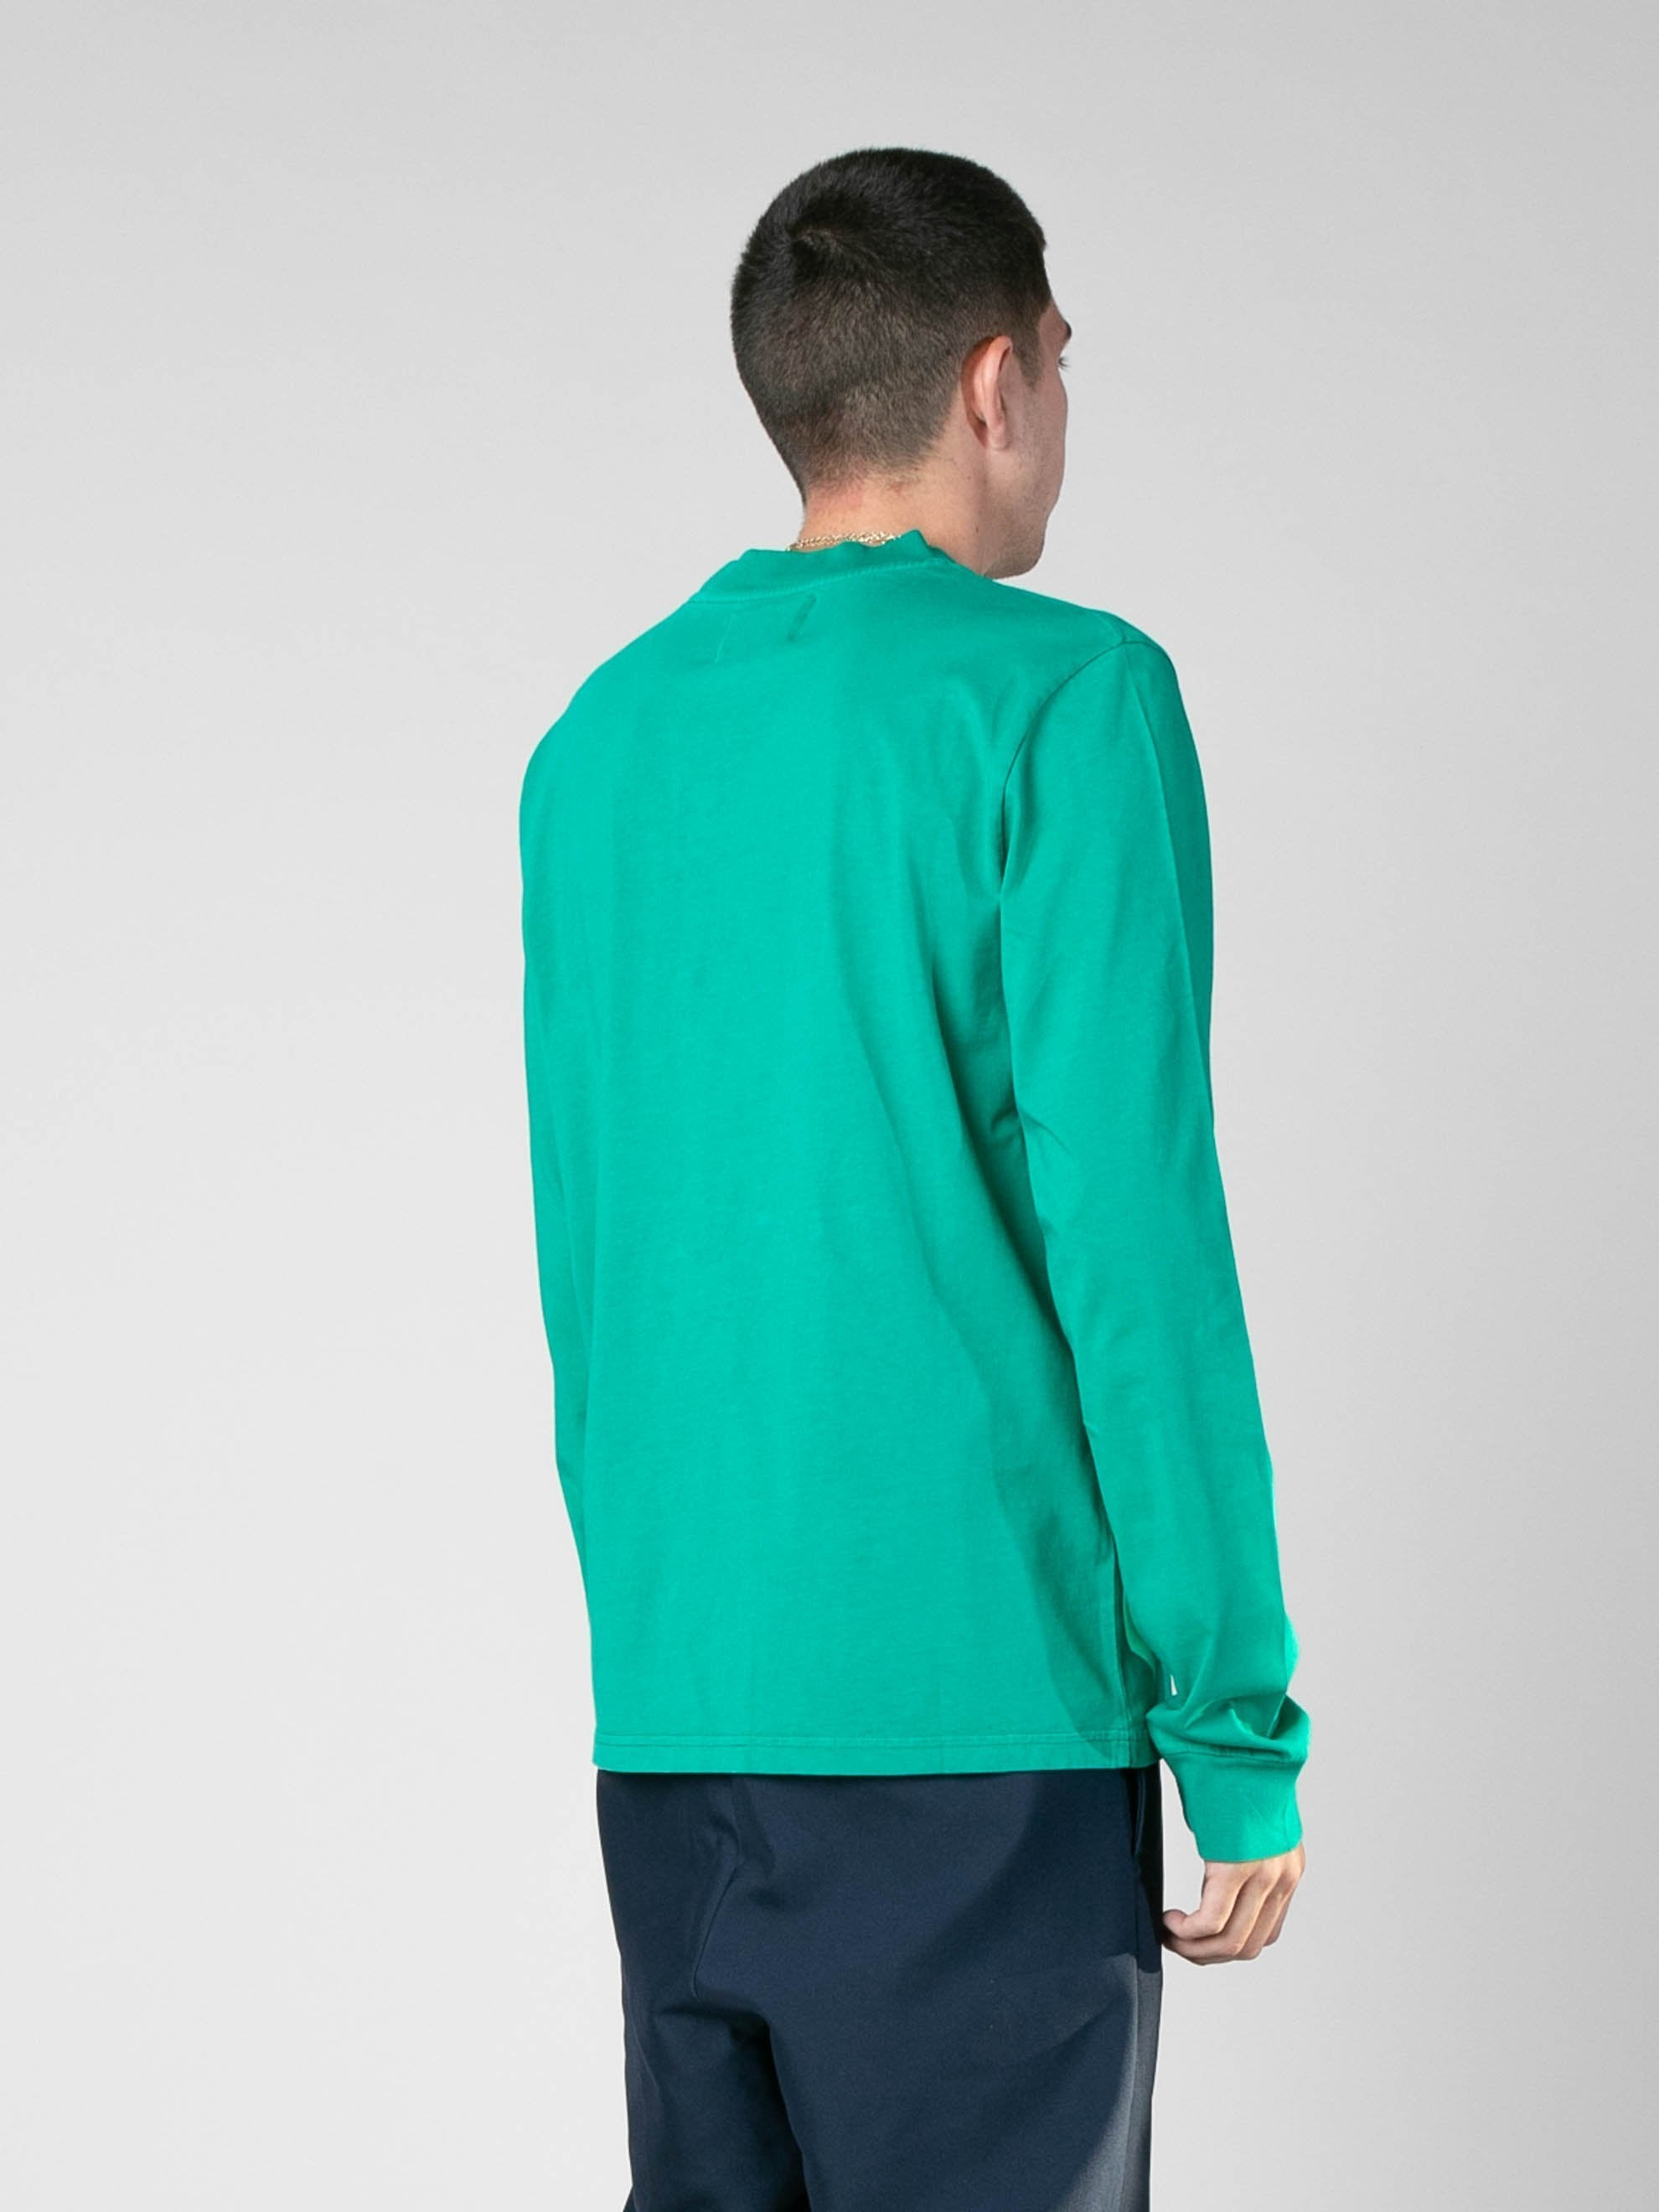 Grass Green Long Sleeve Embroidery Top 4